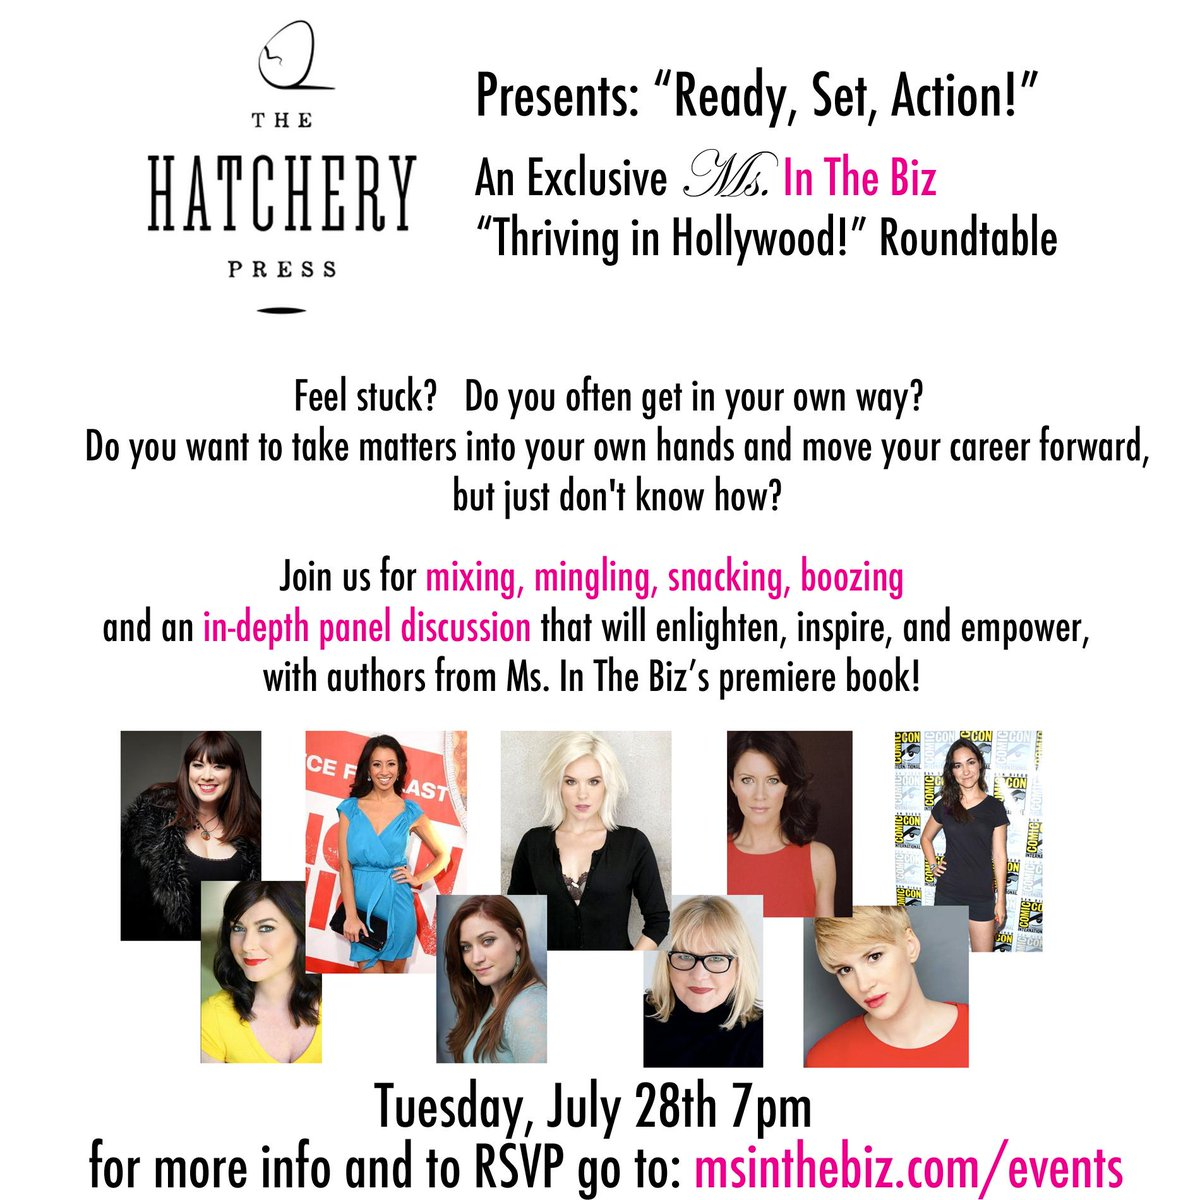 ACTORS: Come to this EPIC @msinthebiz panel! #networking & knowledge bombs! http://t.co/oxkL9W76CC cc: @ActorsAccess http://t.co/FsPhGqfBsa